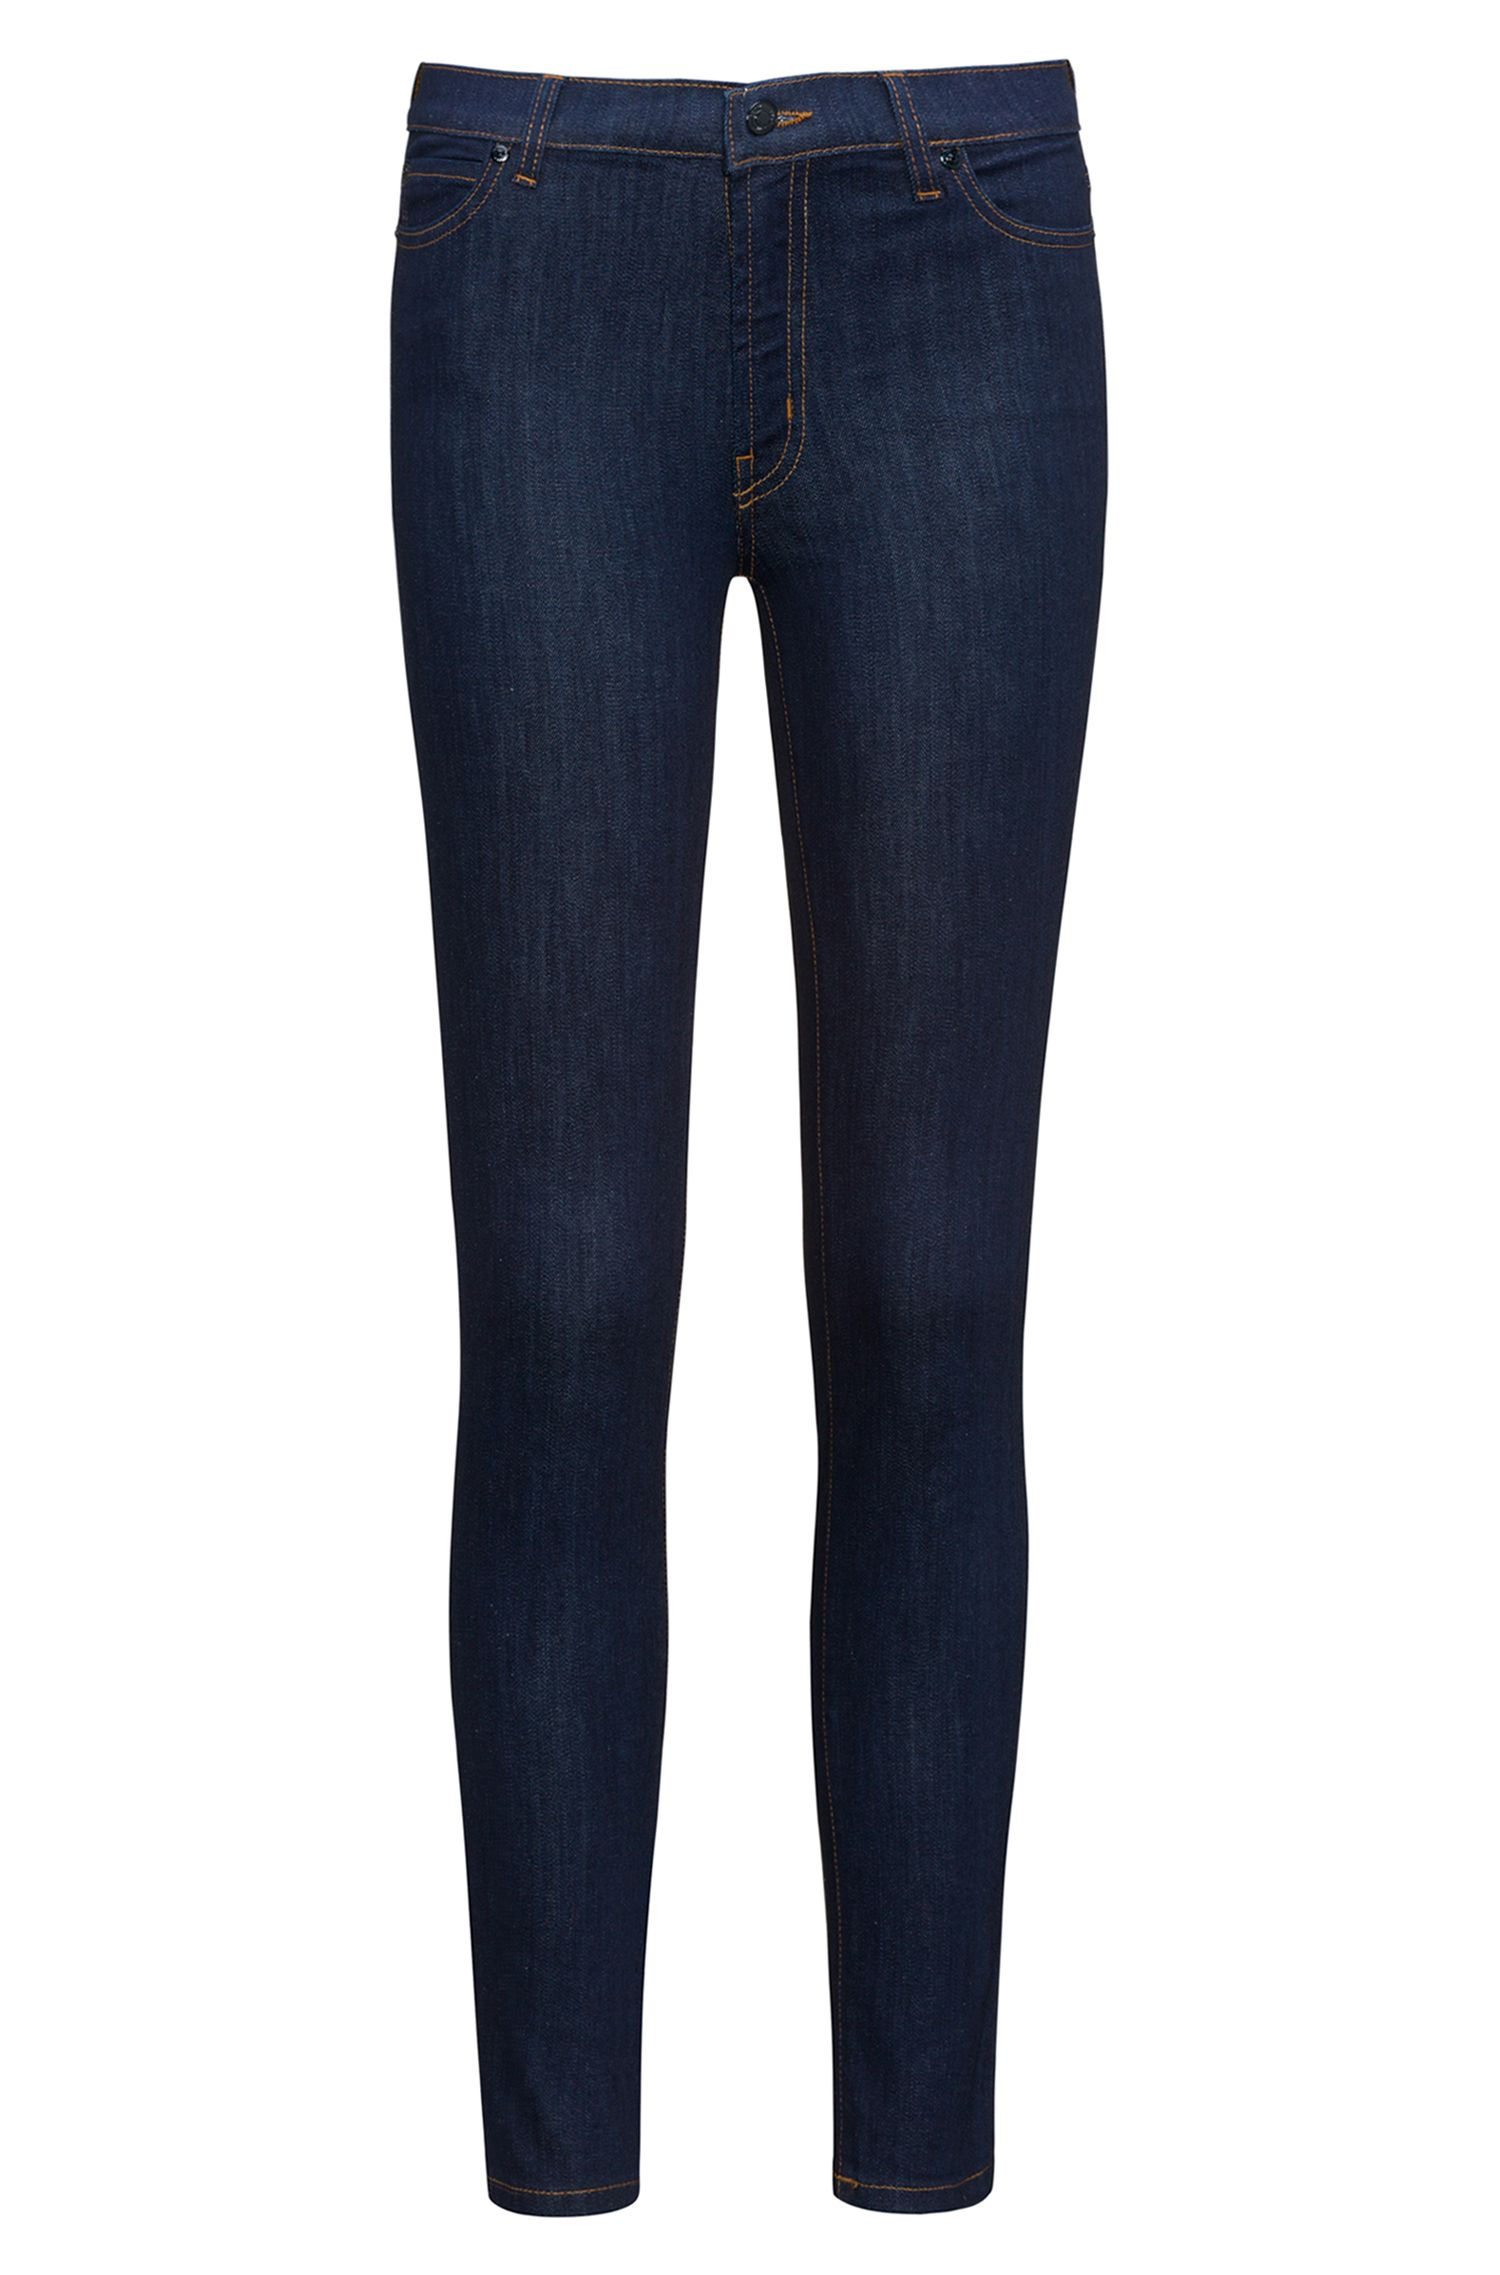 Extra-slim-fit jeans in dark-blue denim